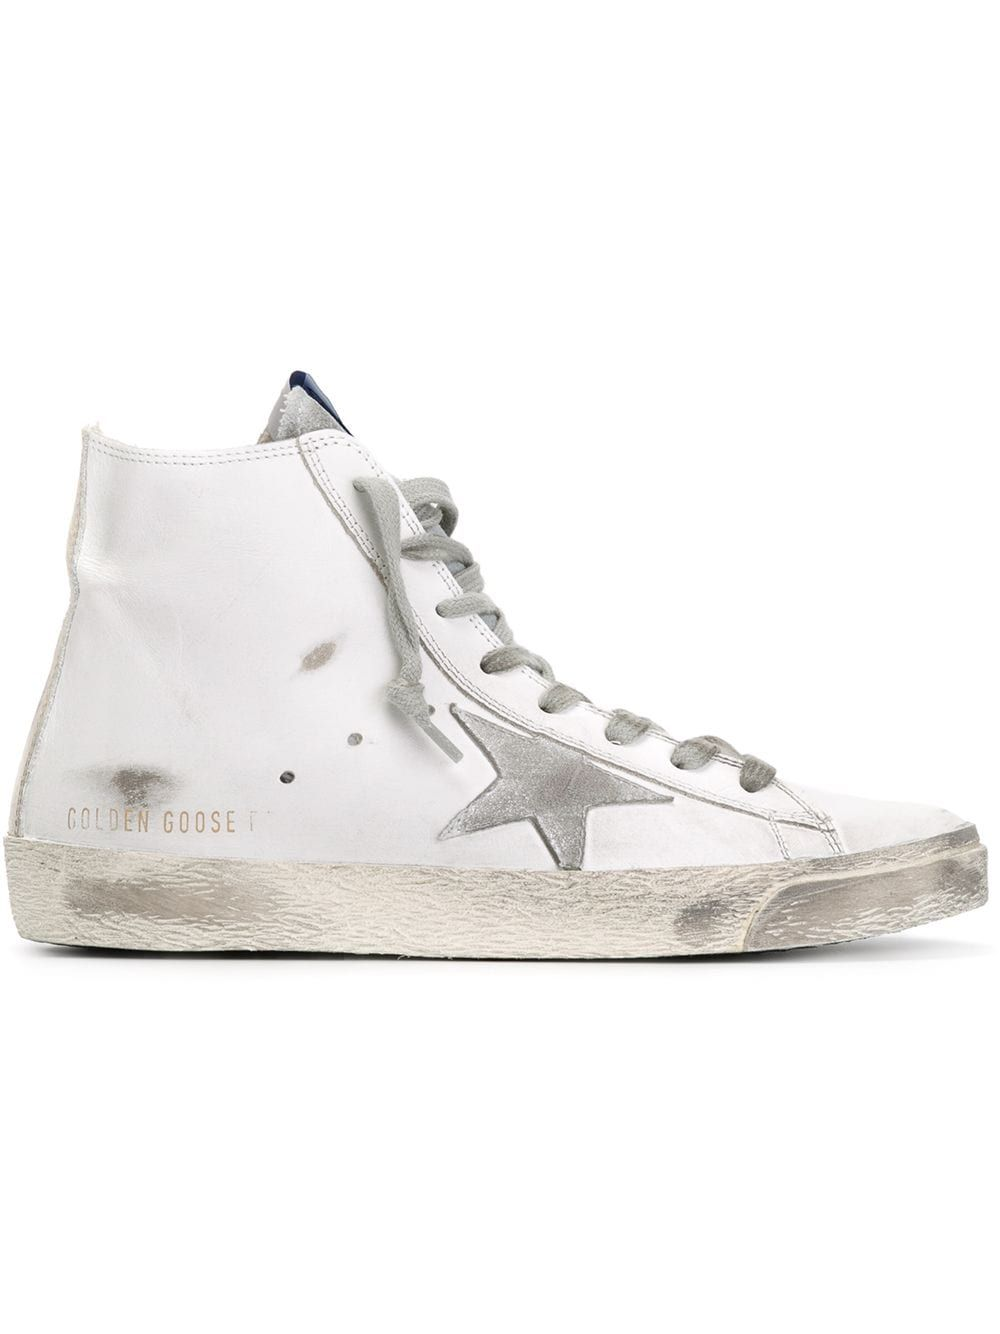 Golden Goose High tops GOLDEN GOOSE WOMEN'S GWF00113F00031910274 WHITE LEATHER HI TOP SNEAKERS